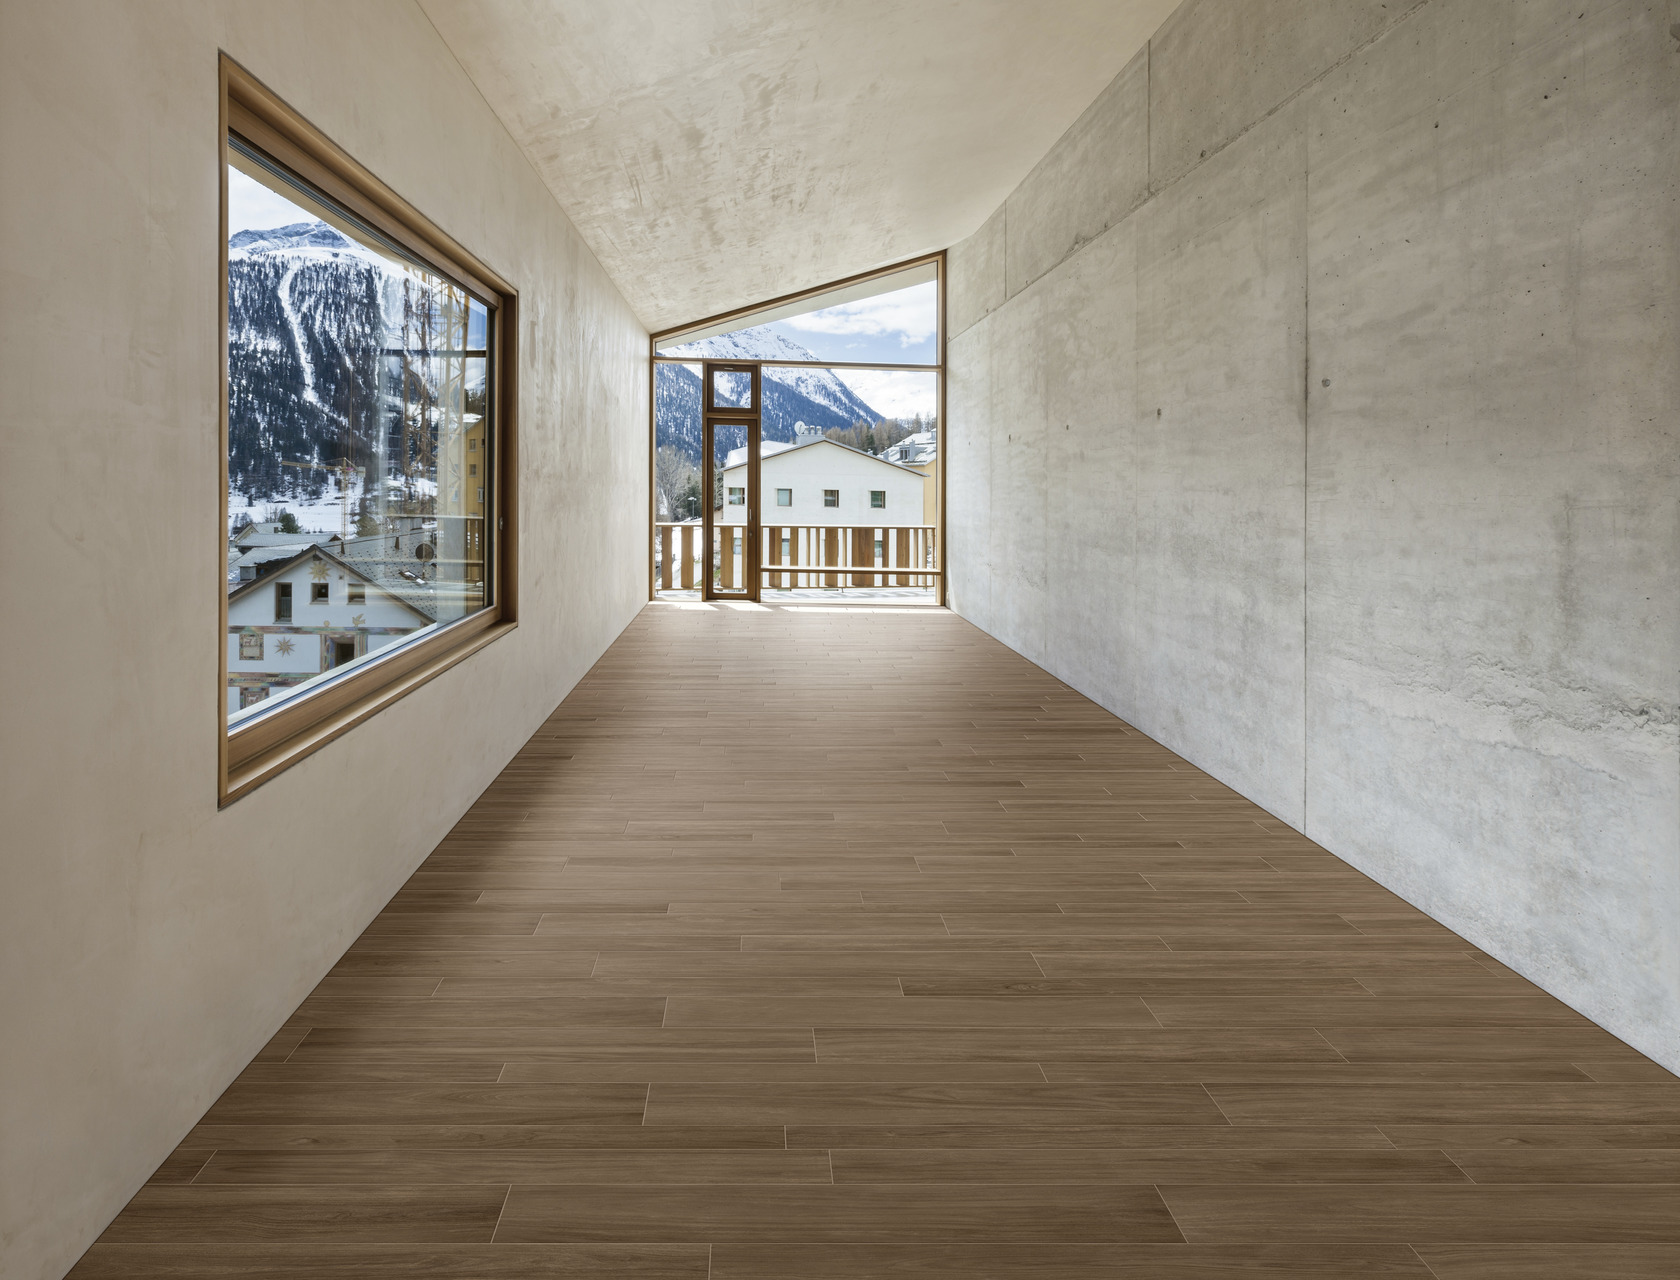 Wood Effect  Porcelain Tiles ROVERE CORTECCIA